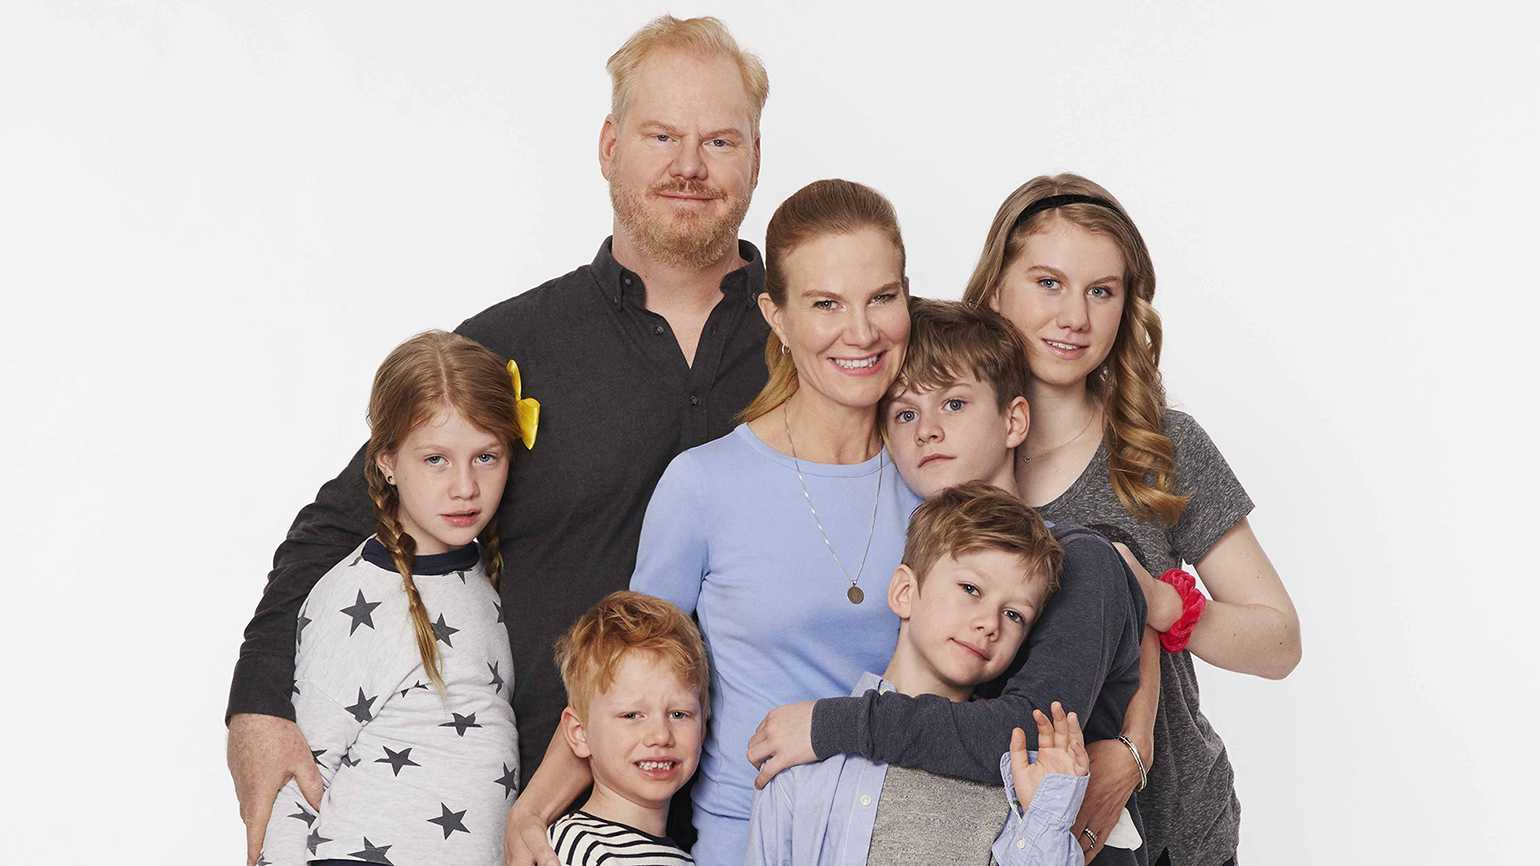 Jeannie and Jim with their kids, Marre, Jack, Michael, Patrick and Katie